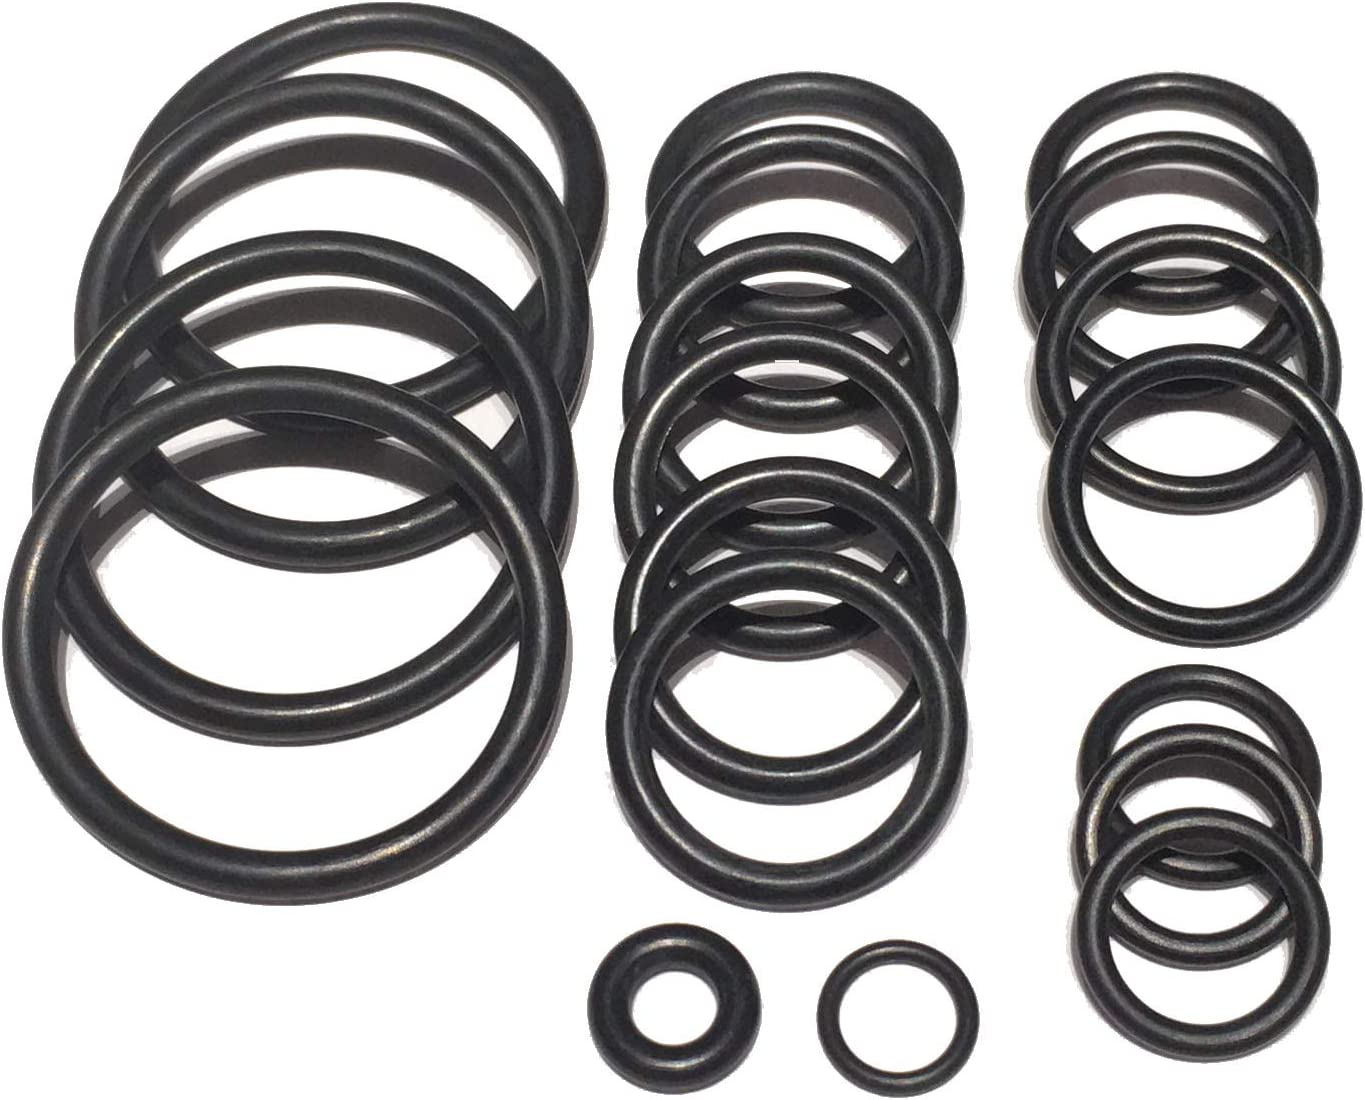 Cooling system radiator hose O ring set For BMW E39 M52 M54 Engines